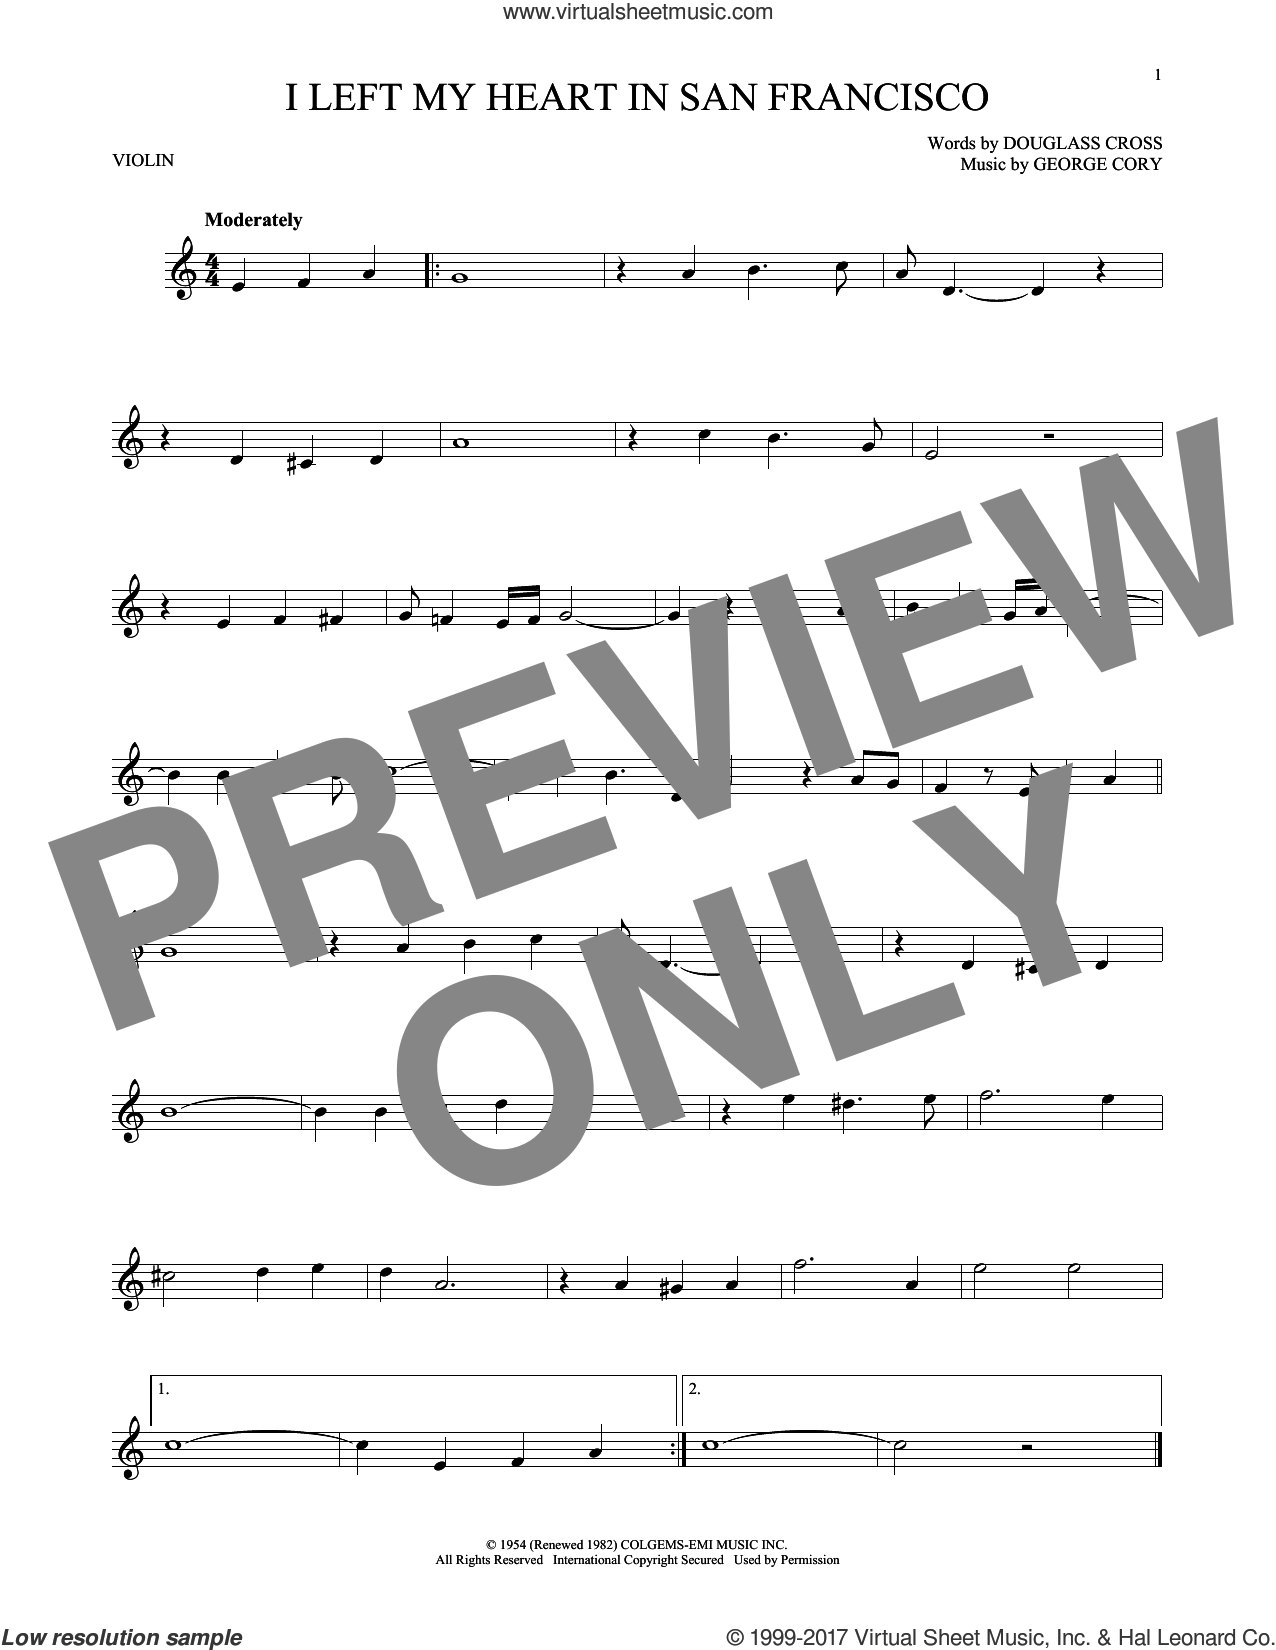 I Left My Heart In San Francisco sheet music for violin solo by George Cory, Tony Bennett and Douglass Cross, intermediate. Score Image Preview.